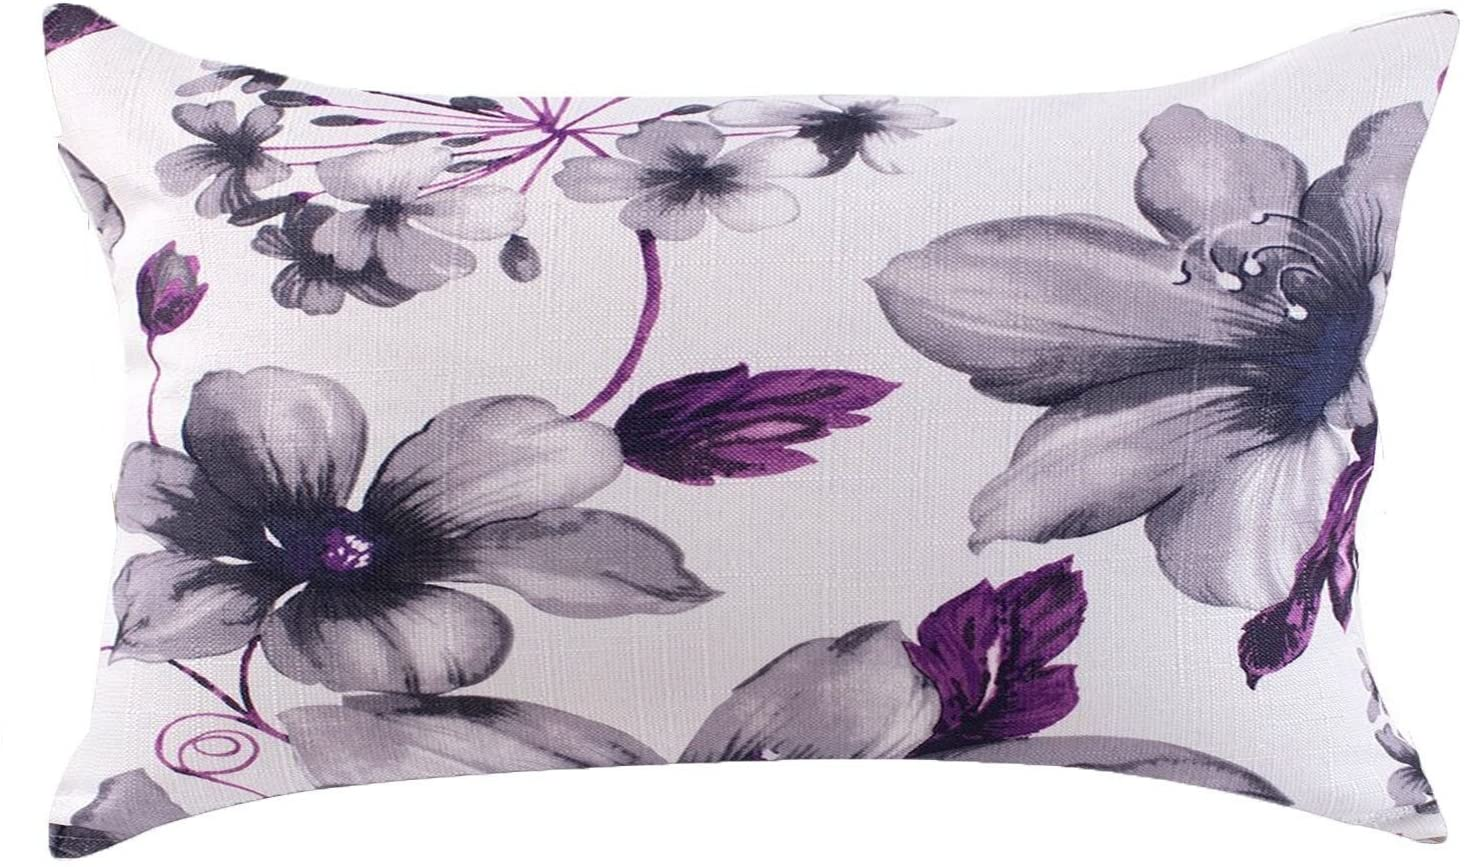 LAZAMYASA Fresh Animal Style Beautiful Rustic Birds Cotton Linen Blend Printed Cushion Cover Cotton Couch Throw Pillow Case Sham Pillowcase 12x20in, Purple Flower